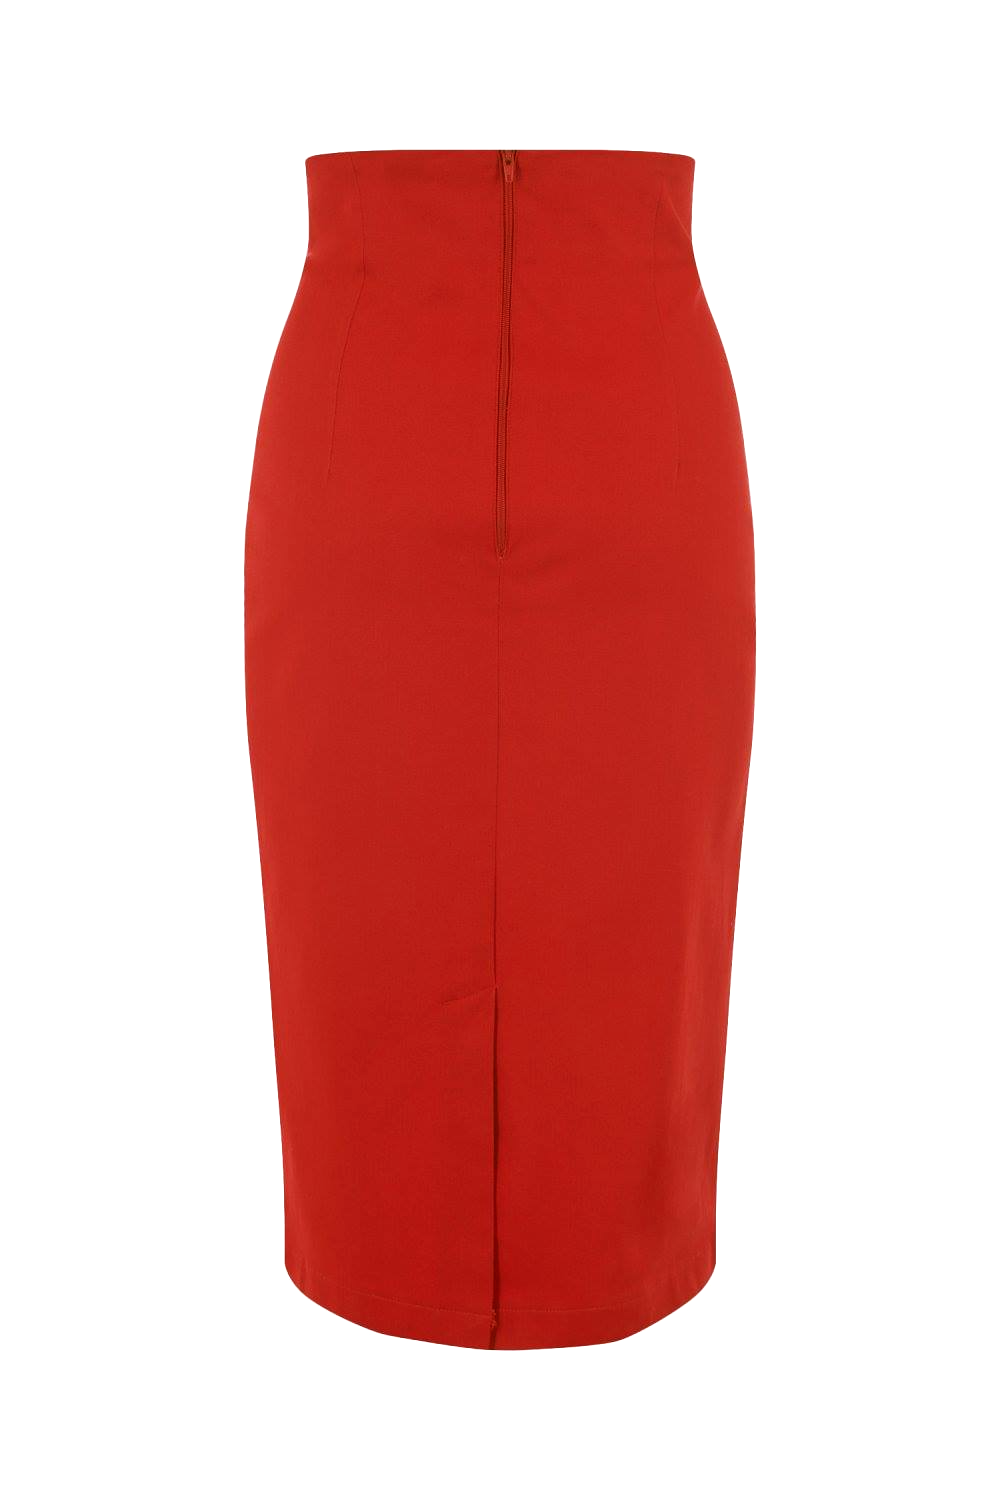 The Joanie Pencil Skirt in retro red by Ponyboy Vintage Clothing!